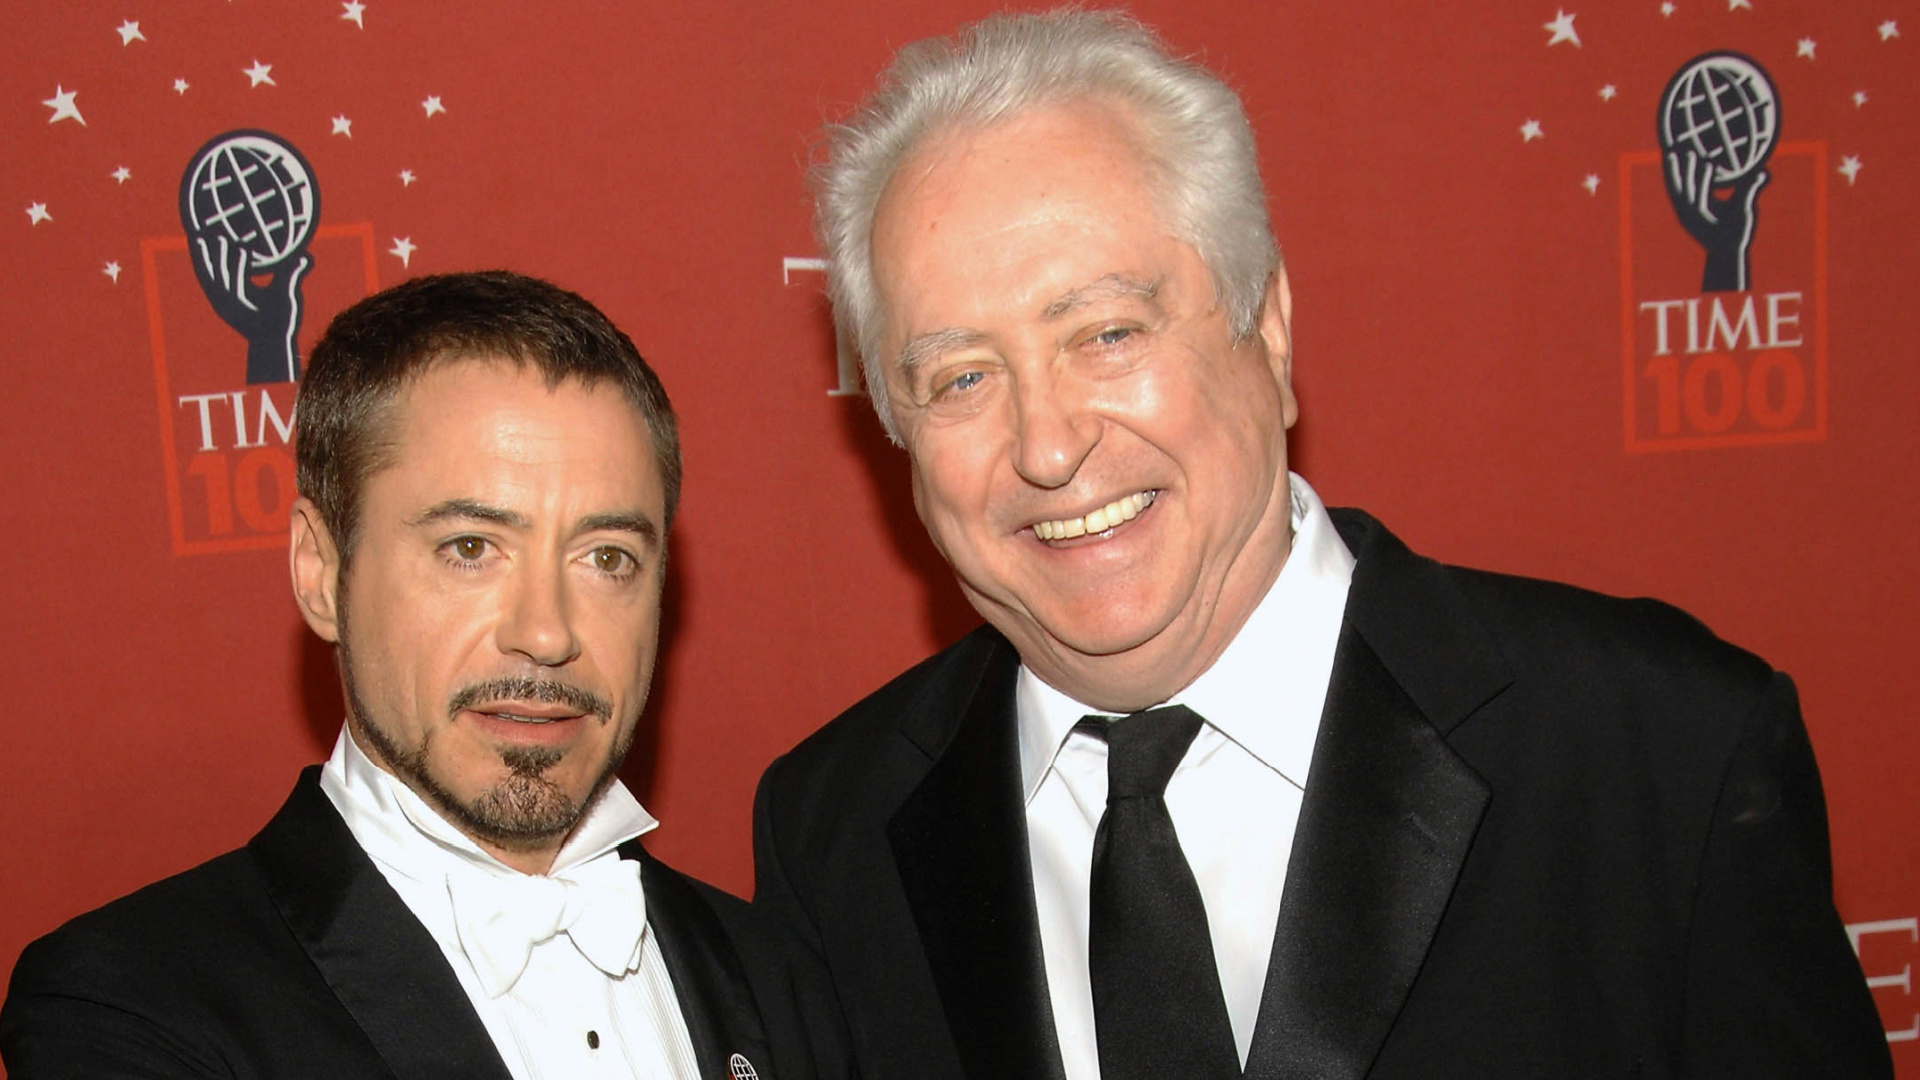 Actor Robert Downey Jr., left, and his father Robert Downey Sr. arrive at Time's 100 Most Influential People in the World Gala in New York on May 8, 2008. Downey Sr., the accomplished countercultural filmmaker, actor and father of superstar Robert Downey Jr., has died. He was 85. Downey Jr. wrote on Instagram that his father died late Tuesday in his sleep at home in New York. He had Parkinson's disease for more than five years. (AP Photo/Evan Agostini, File)